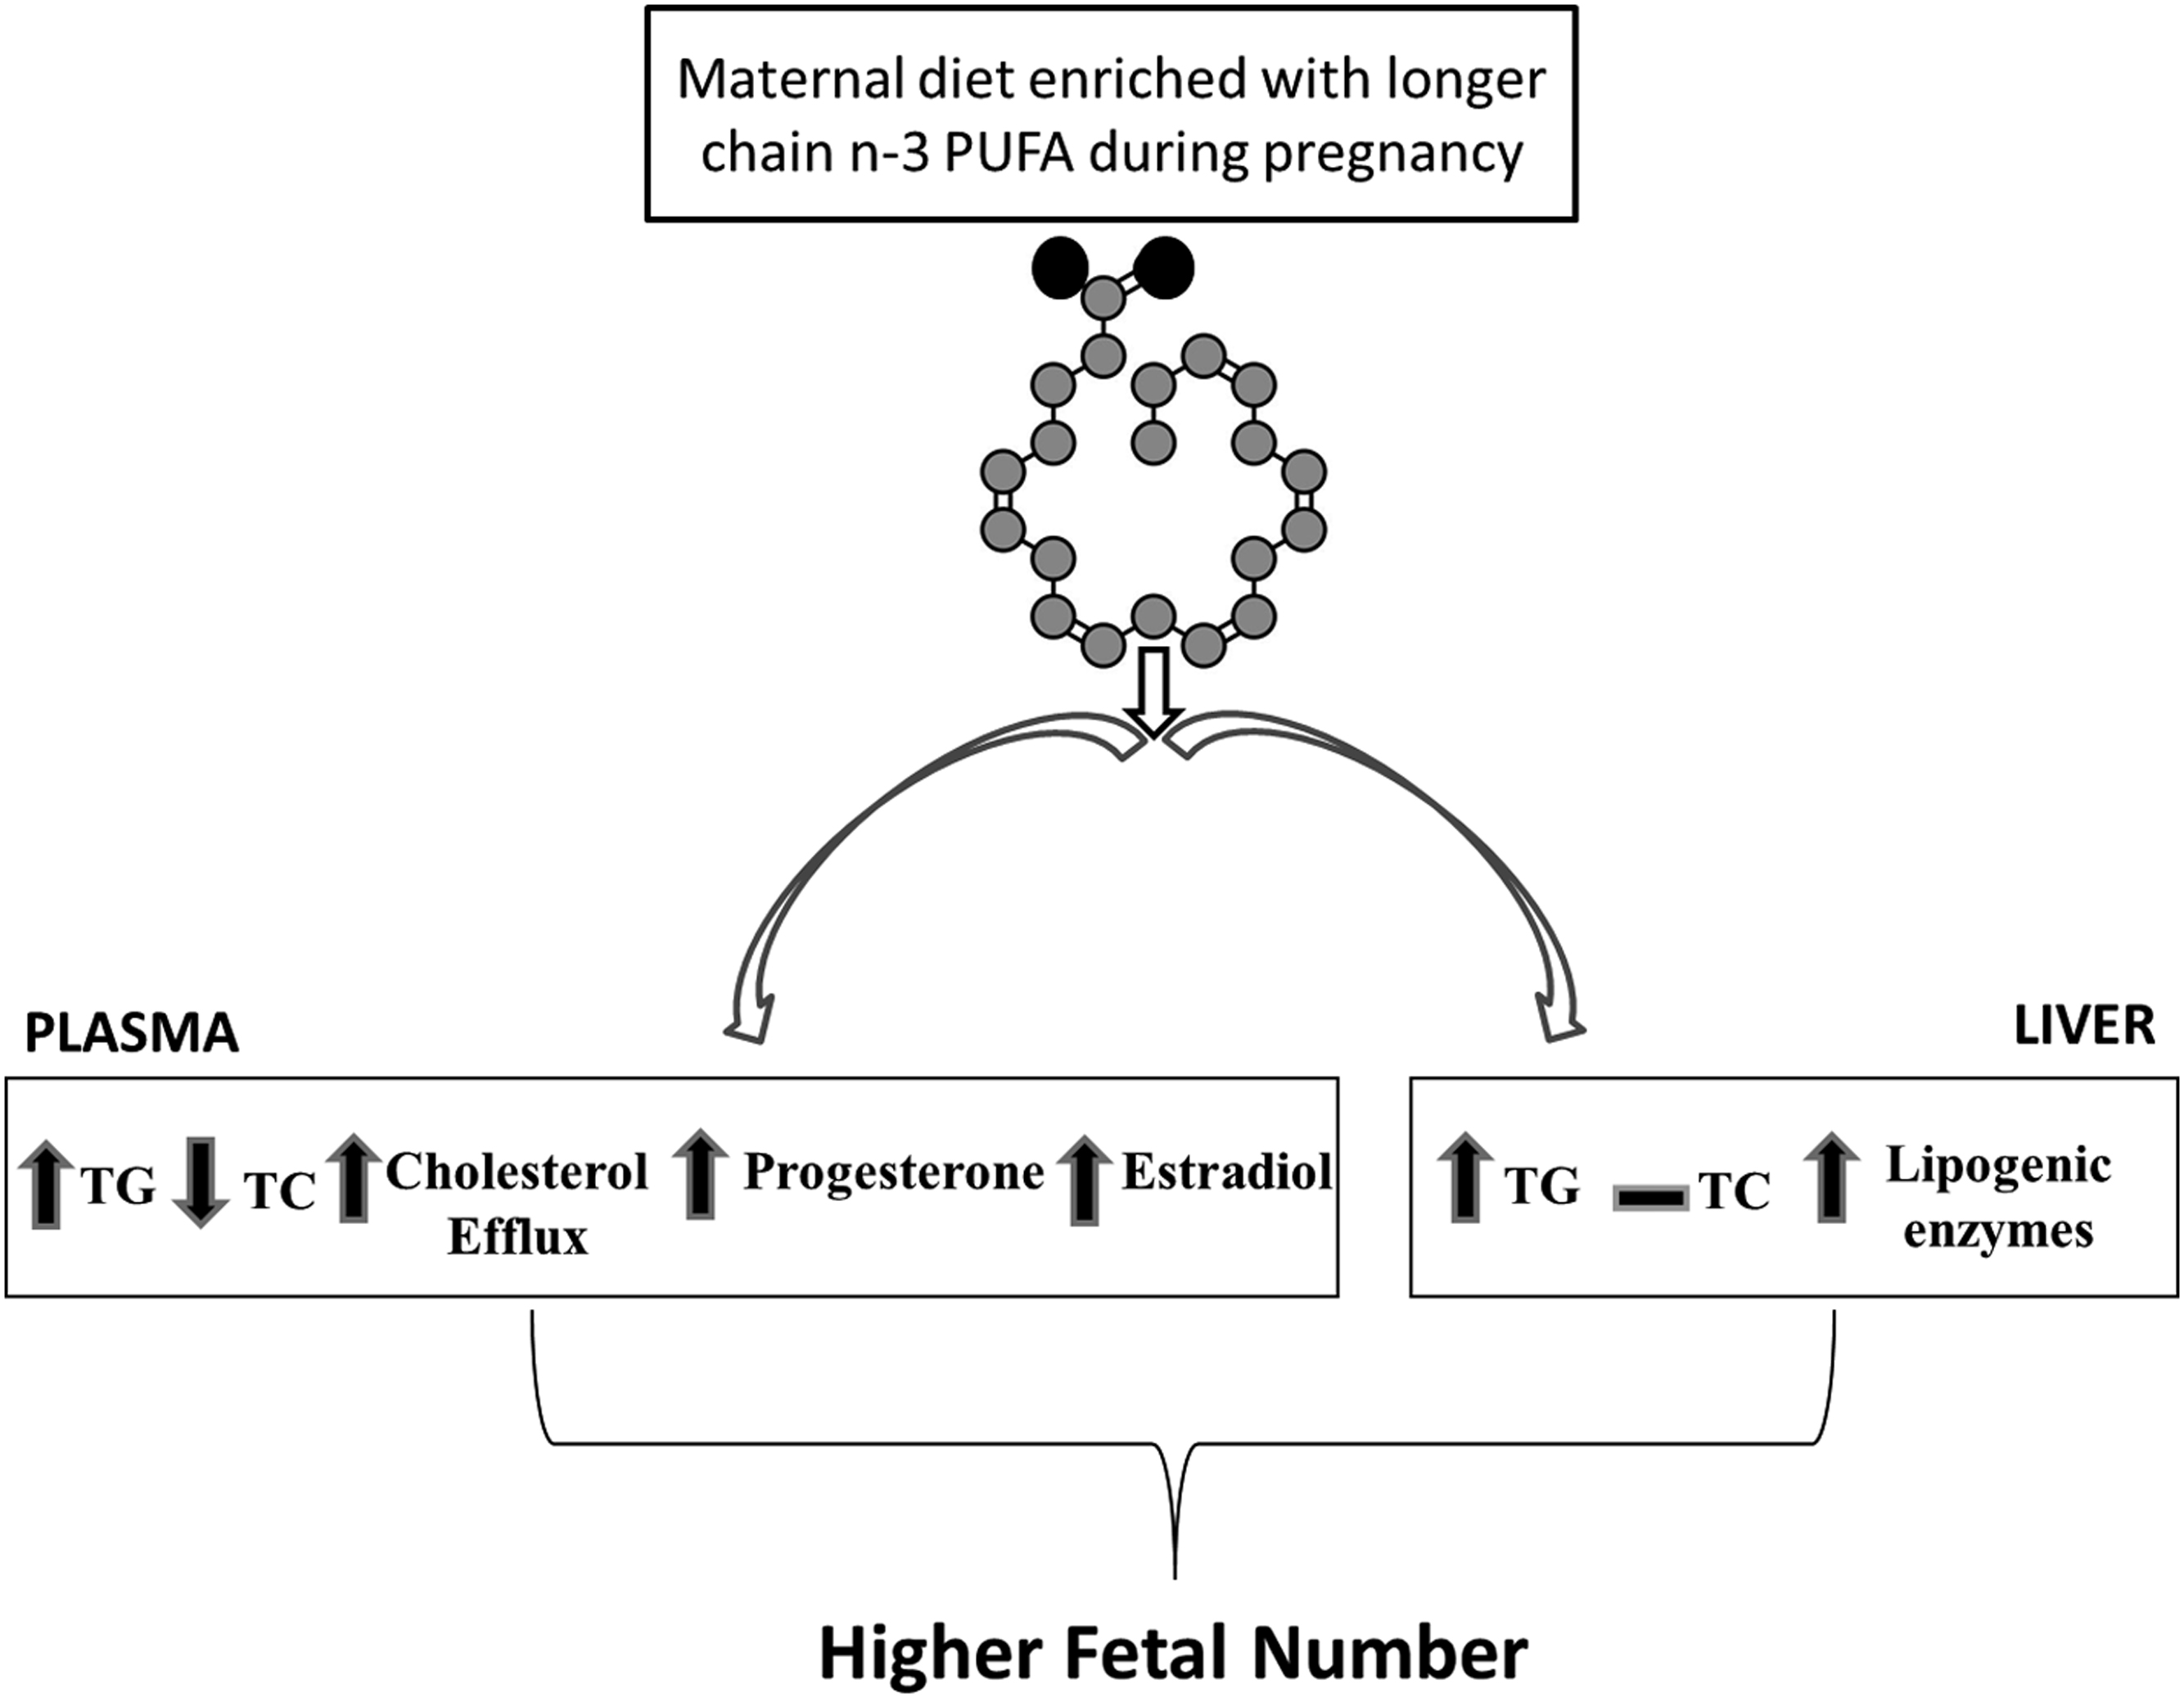 A low-fat diet enriched in fish oil increased lipogenesis and fetal